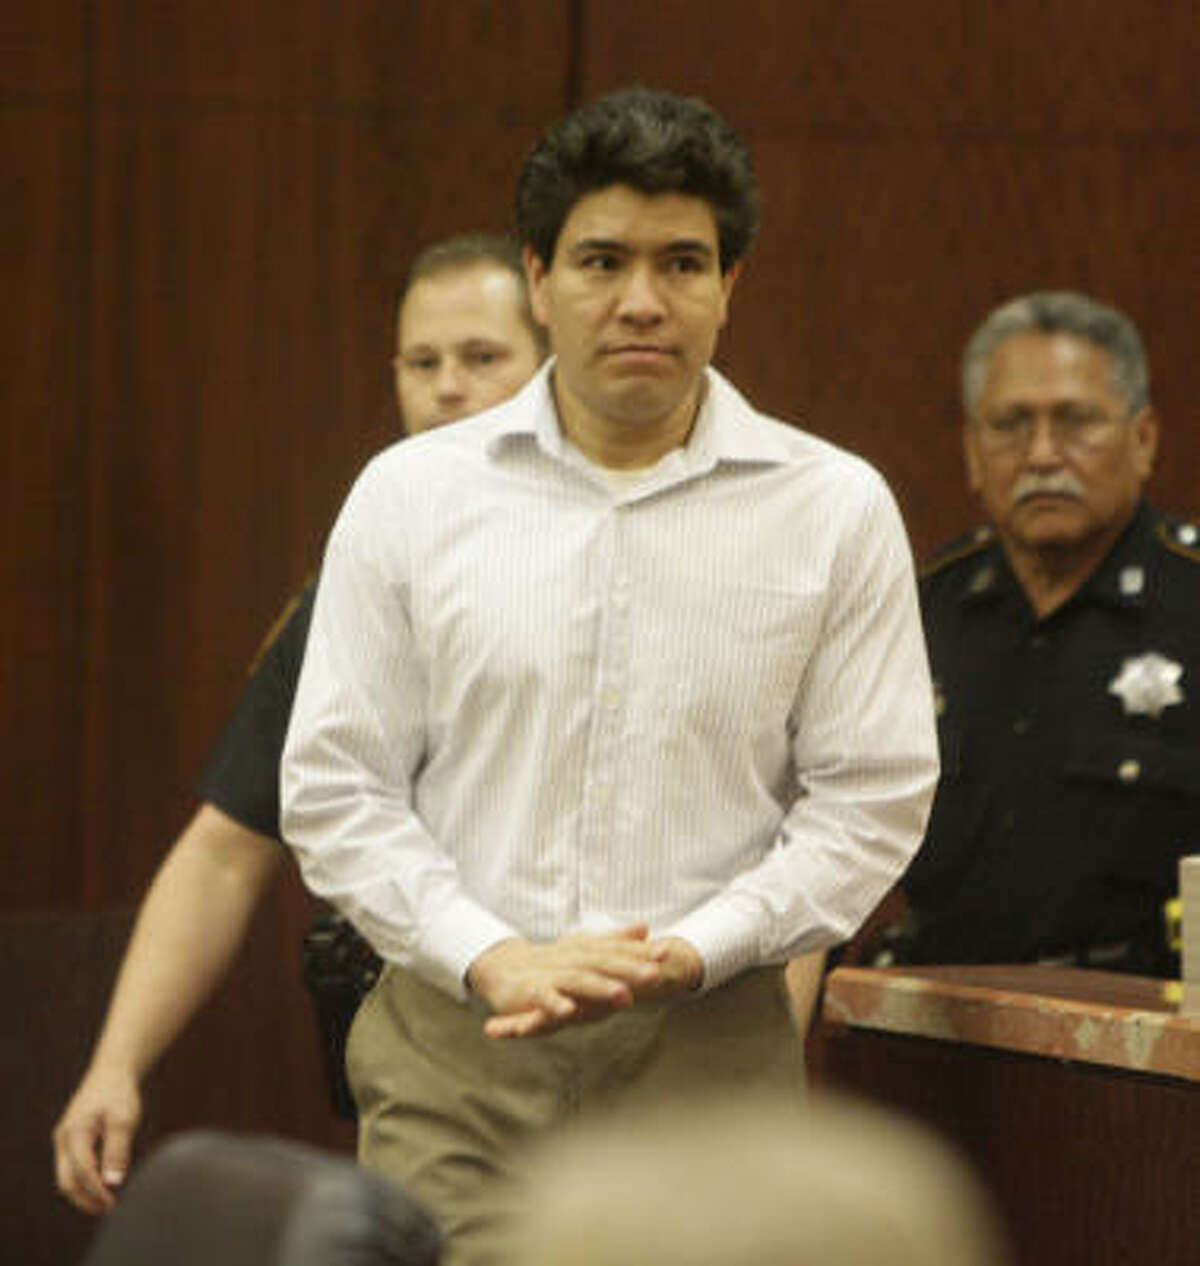 Jurors found illegal immigrant Juan Leonardo Quintero guilty of capital murder in the death of a police officer.